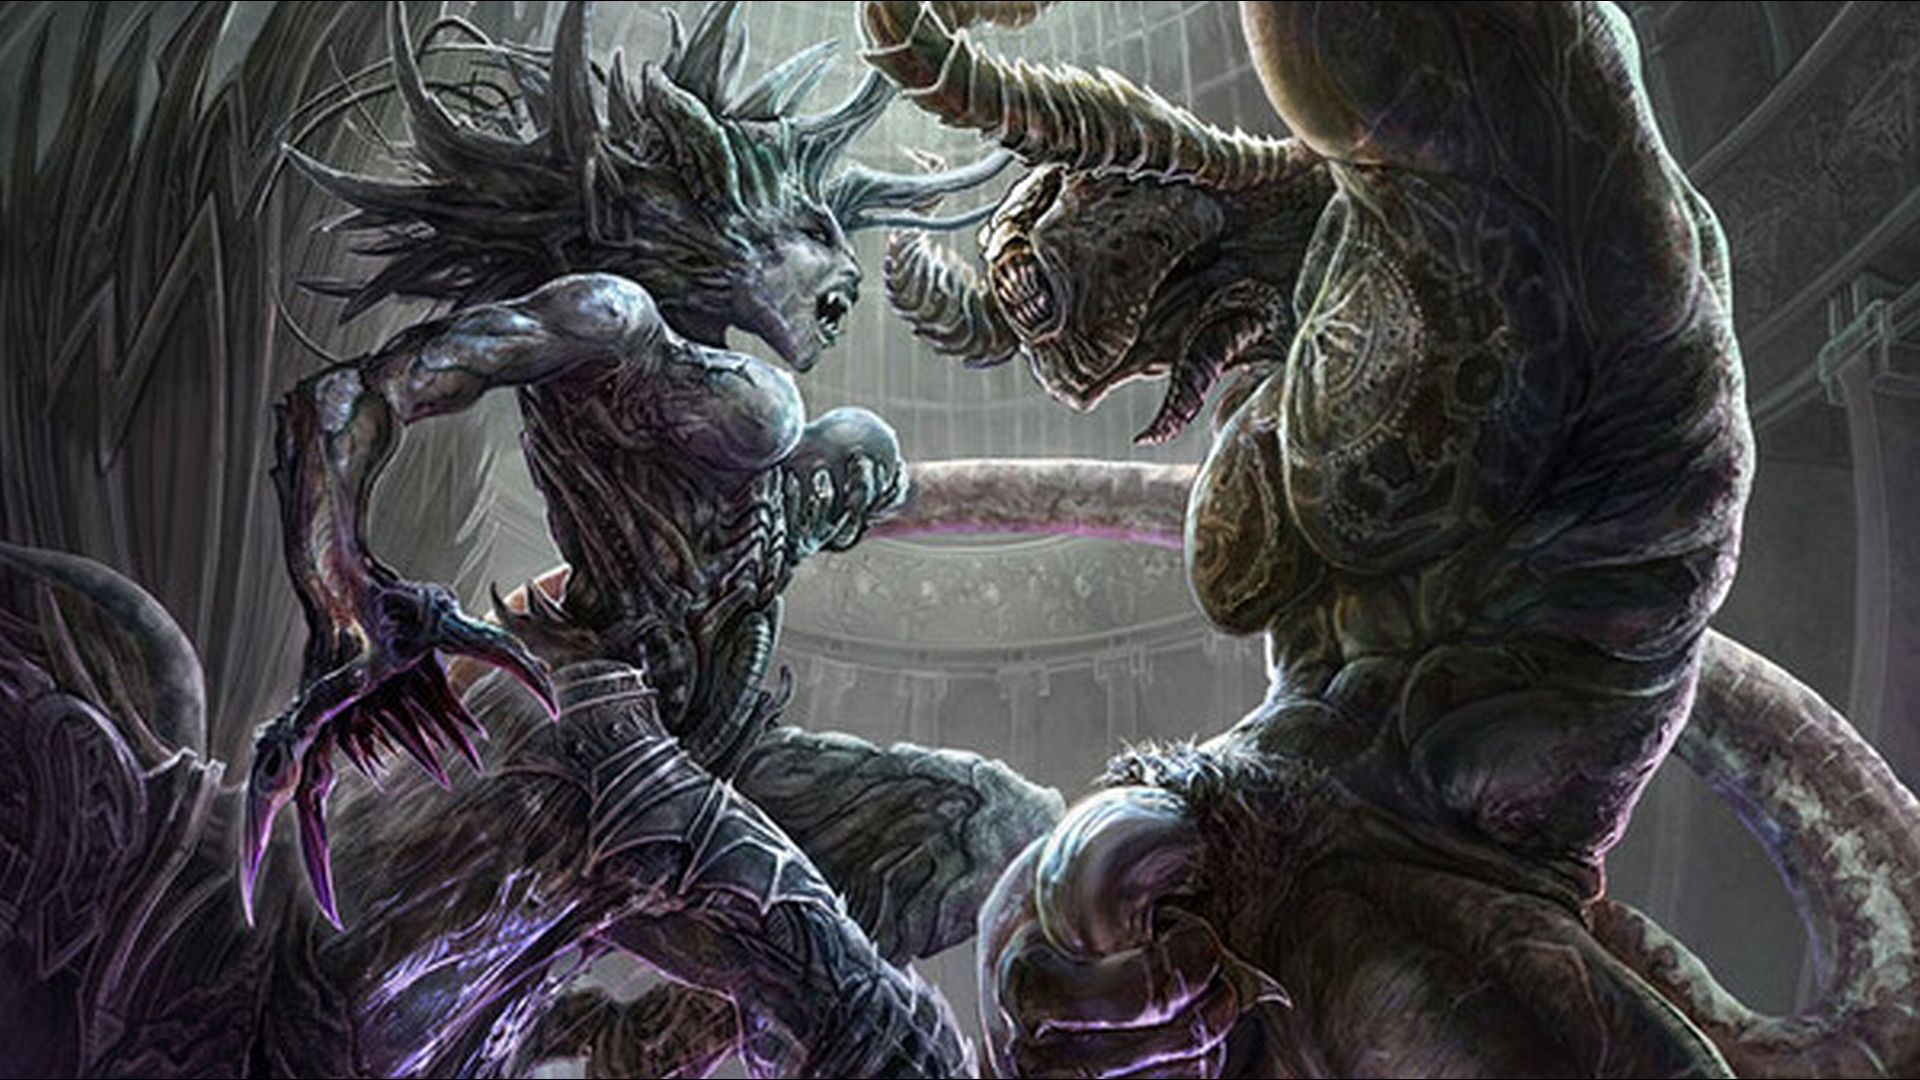 Anime Dubstep Wallpaper Creature Full Hd Wallpaper And Background Image